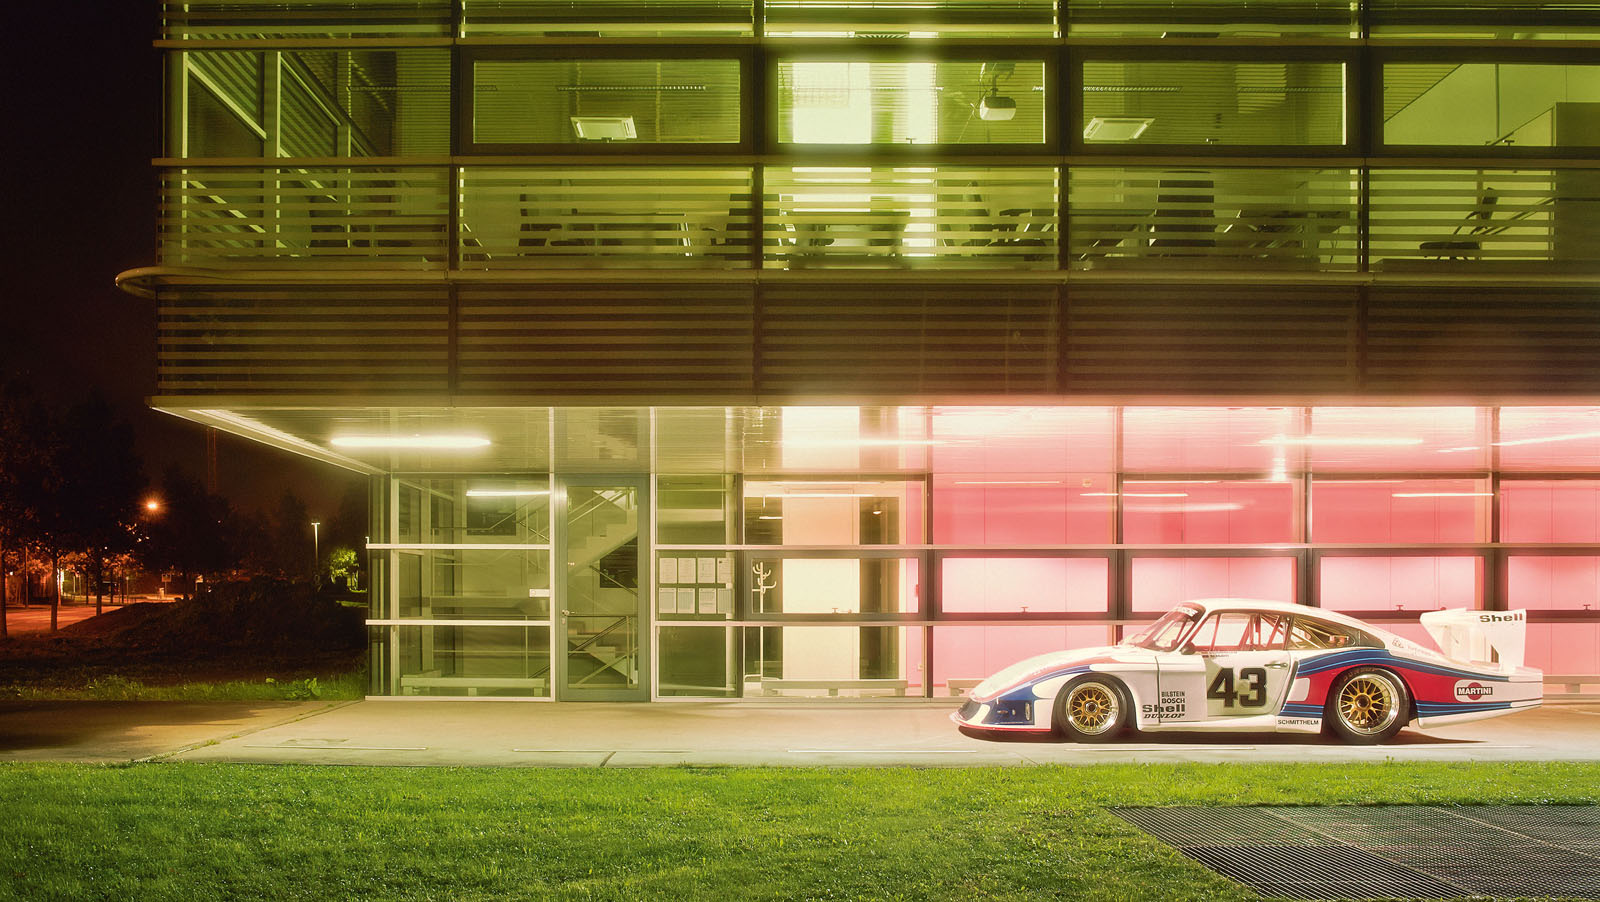 1288284_the_institute_of_high_performance_computing_at_the_university_of_stuttgart_and_the_porsche_935_moby_dick_.jpg